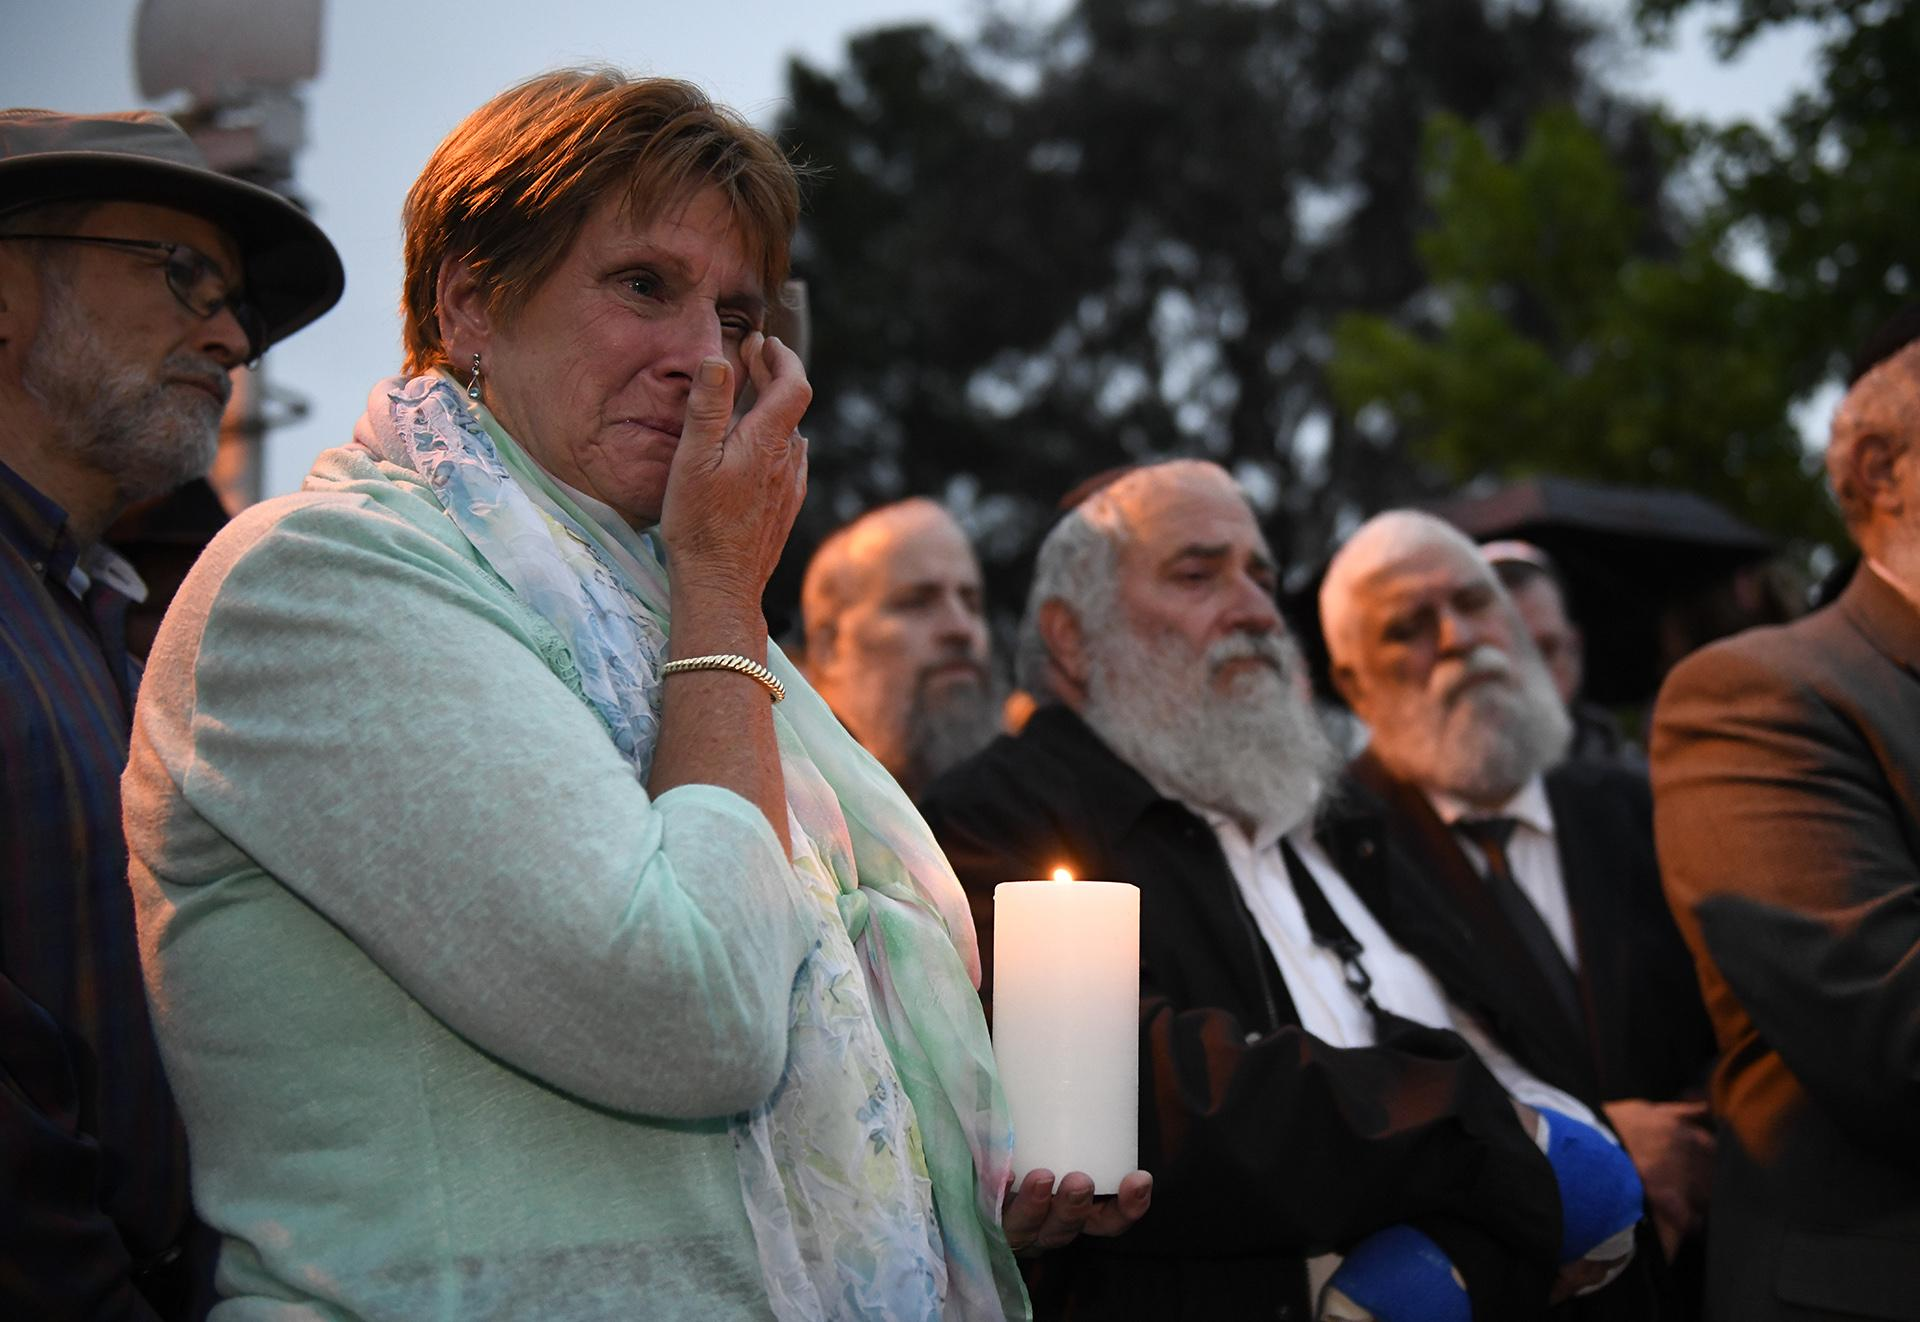 A woman cries during a candlelight vigil held for victims of the Chabad of Poway synagogue shooting, Sunday, April 28, 2019, in Poway, California. (AP Photo / Denis Poroy)